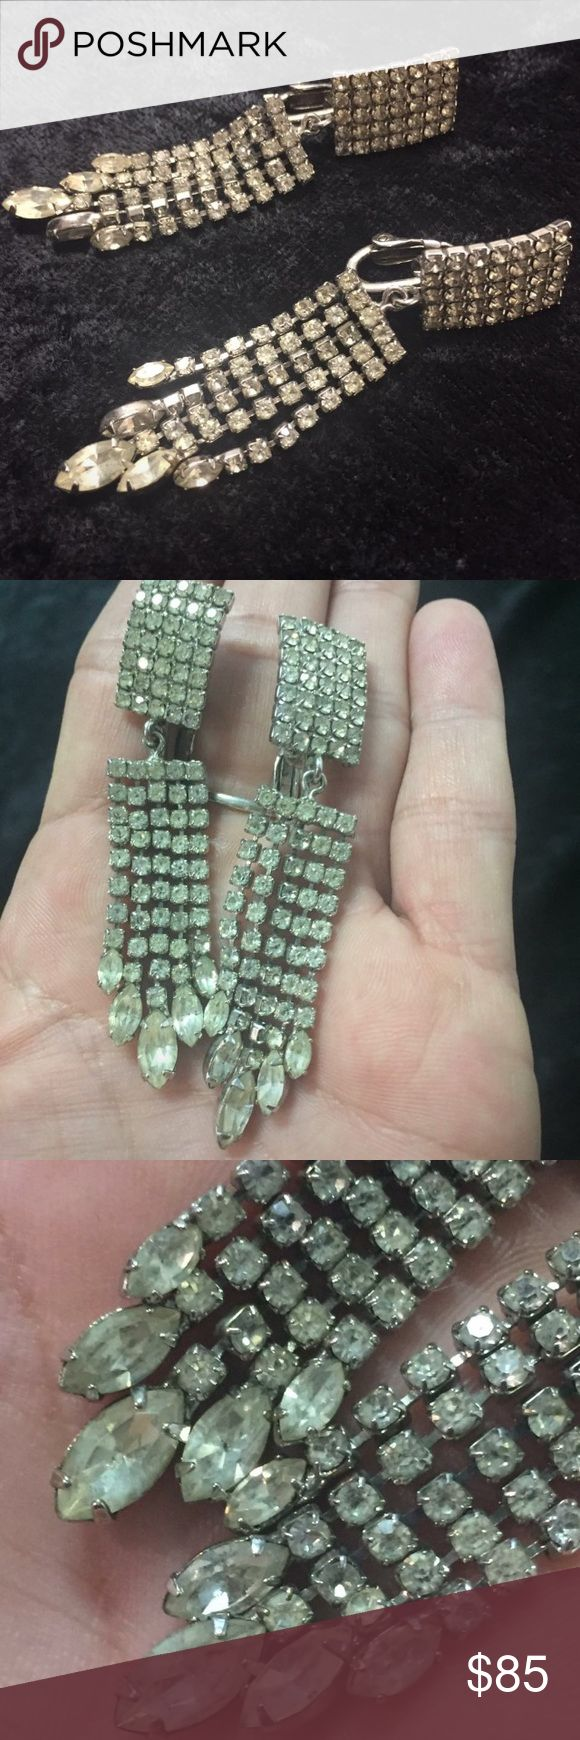 """Signed Napier crystal chandelier earrings EUC Vintage Napier chandelier earrings. These look basically new. They are in wonderful condition. No missing crystals. A vintage must have. Size is .5"""" wide and 1 3/4"""" long. Napier Jewelry Earrings"""